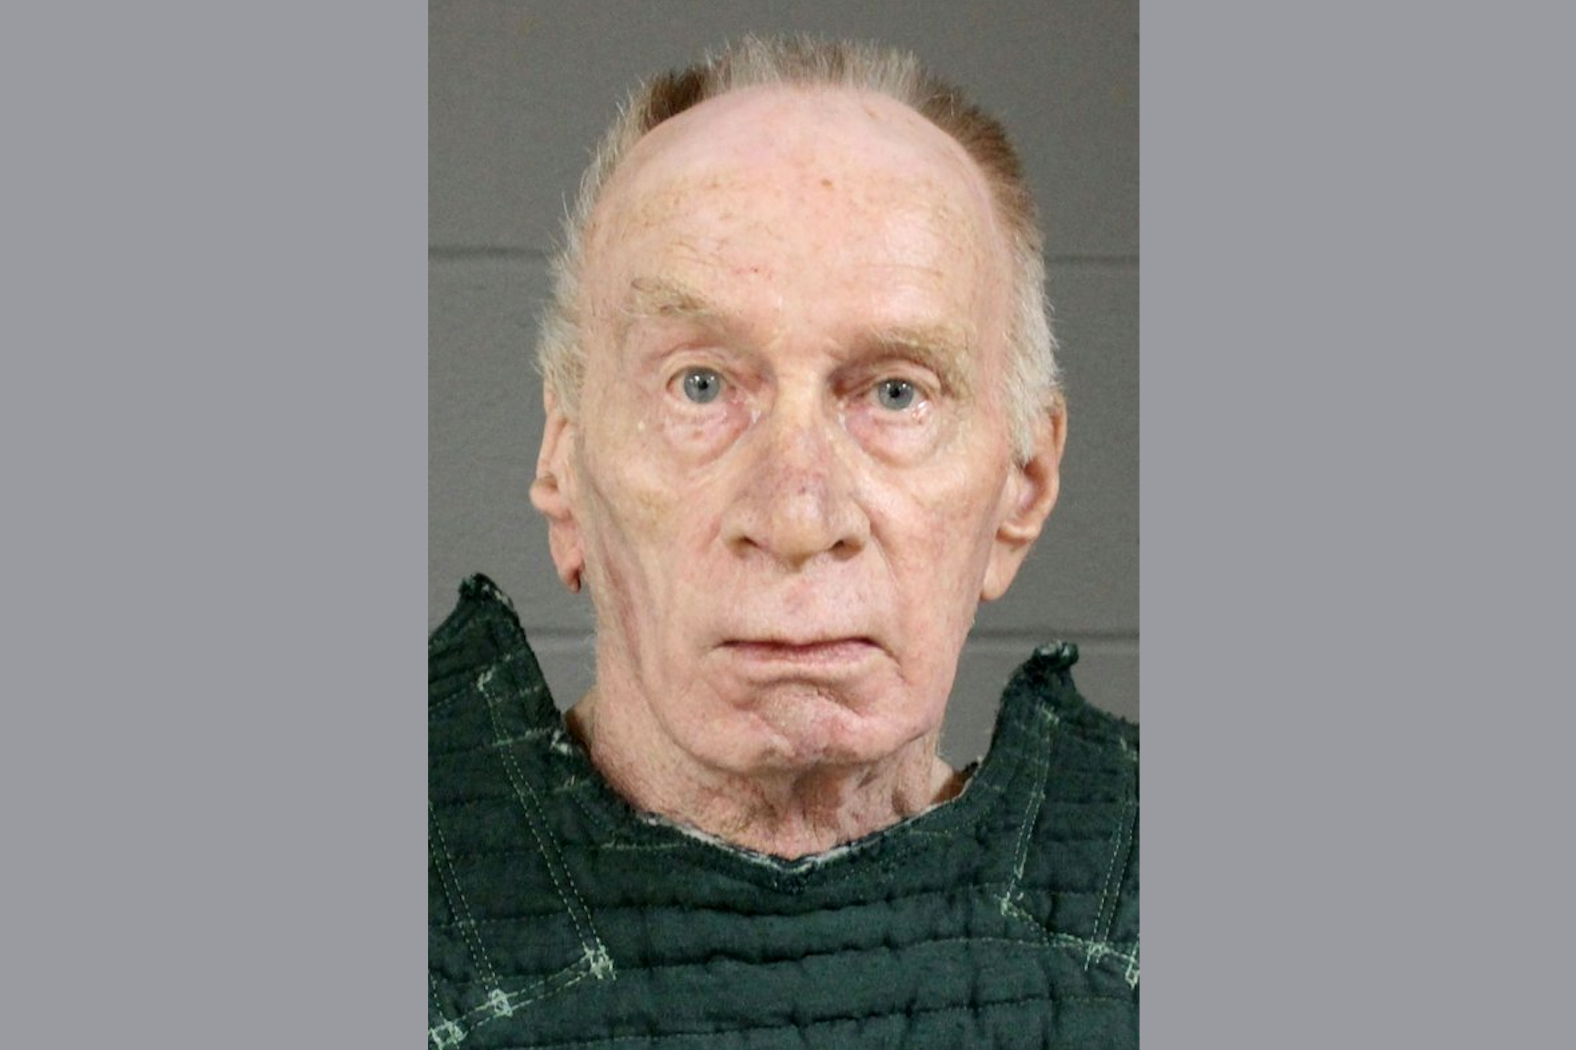 South Dakota man charged in 1974 slaying in Minnesota